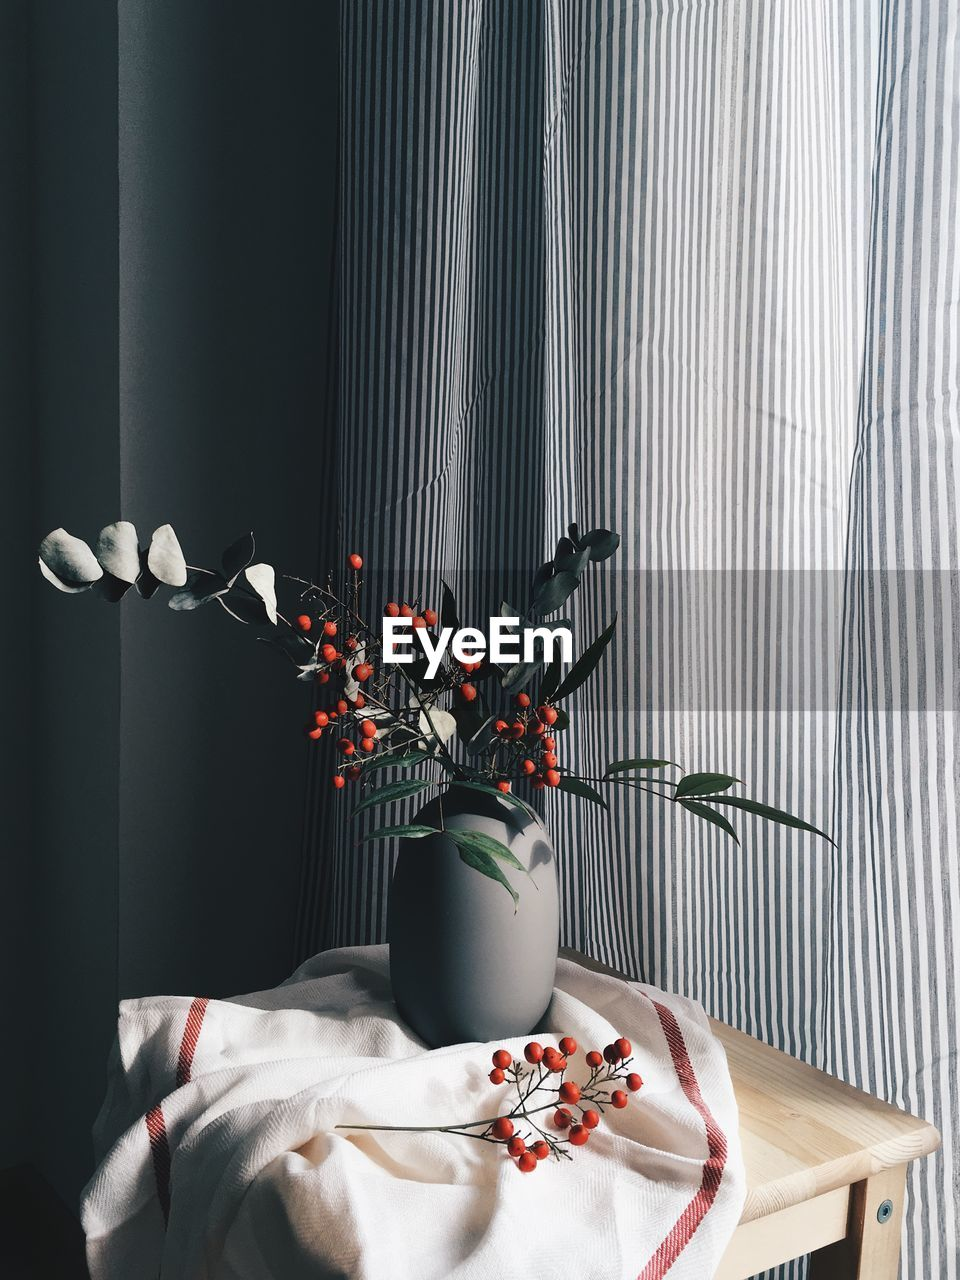 indoors, no people, plant, flower, table, vase, nature, flowering plant, curtain, freshness, home interior, still life, wall - building feature, decoration, food and drink, white color, day, toy, textile, food